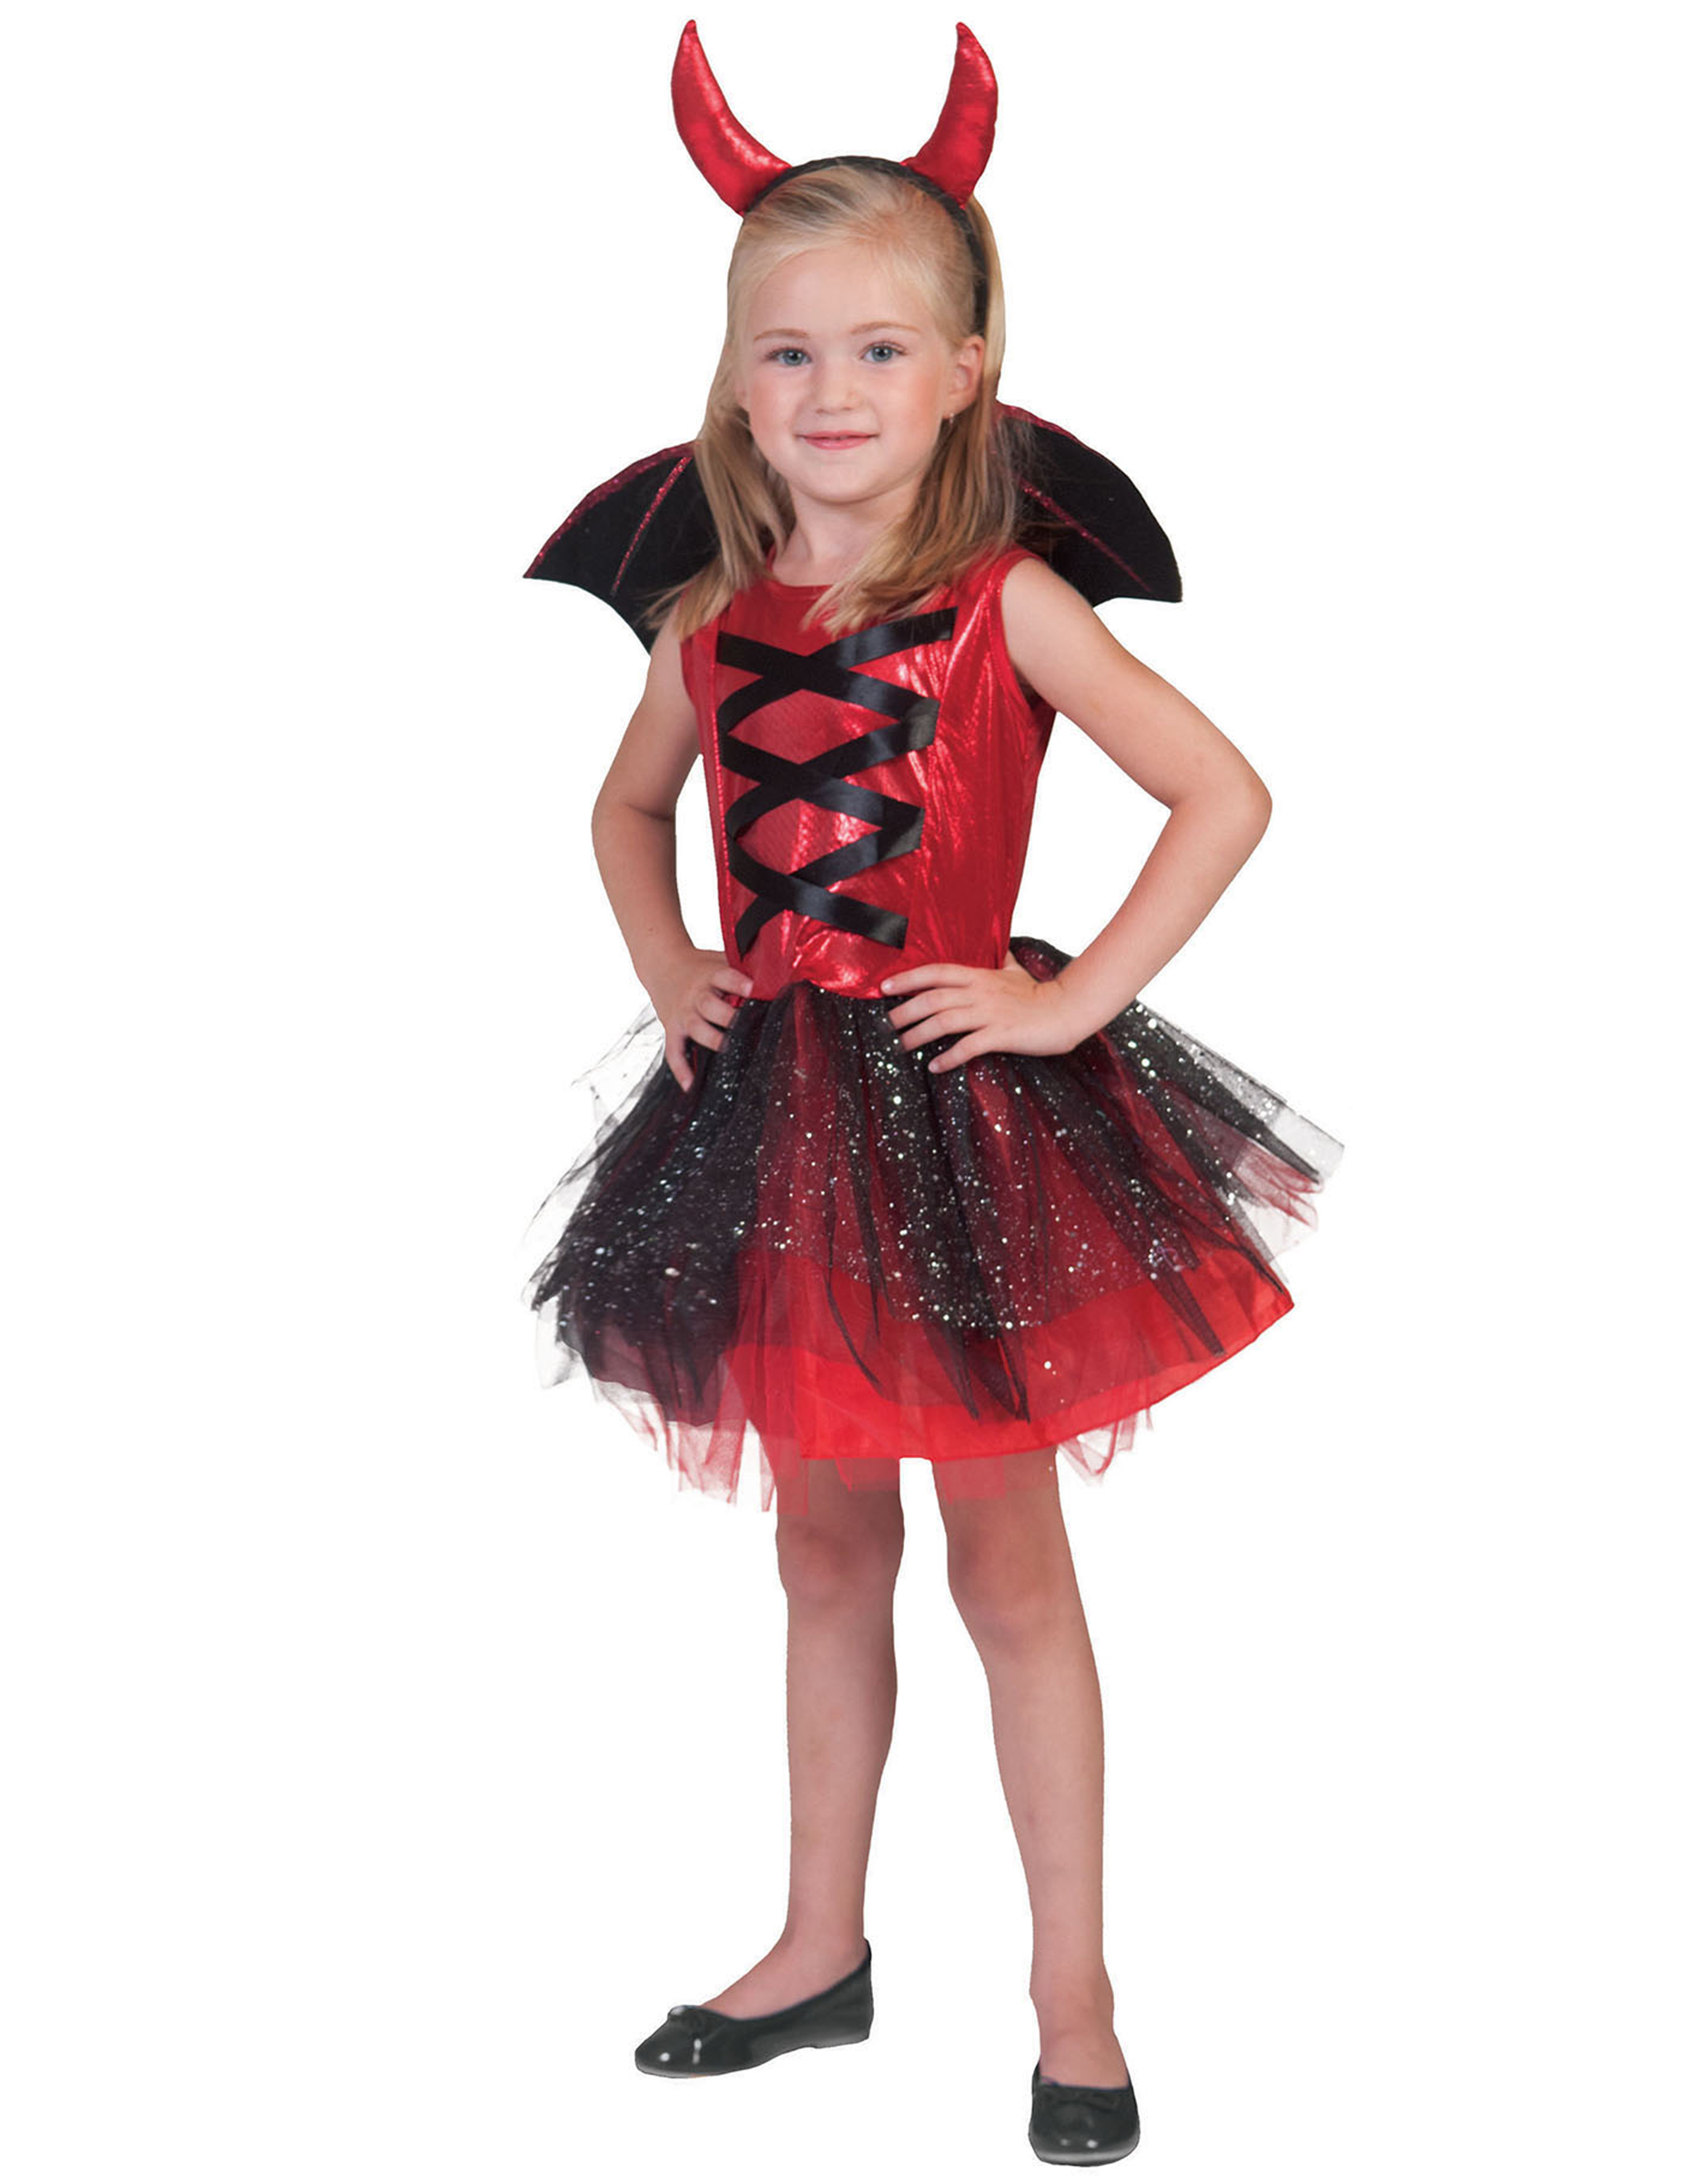 d guisement diablesse tutu avec ailes fille halloween deguise toi achat de d guisements enfants. Black Bedroom Furniture Sets. Home Design Ideas